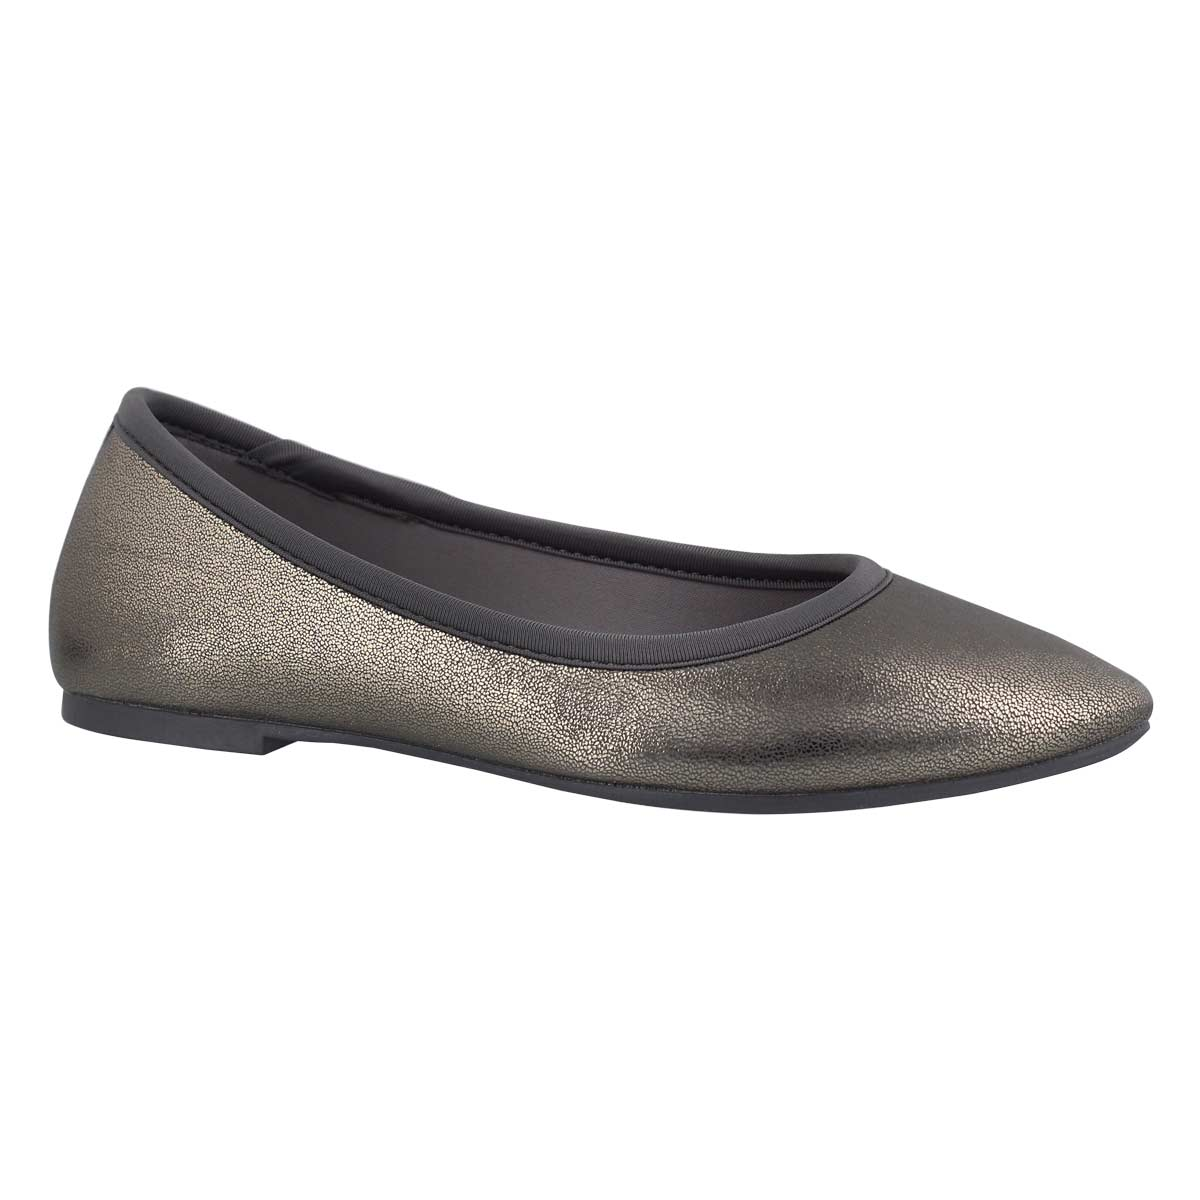 Women's CLEO charcoal metallic casual flats